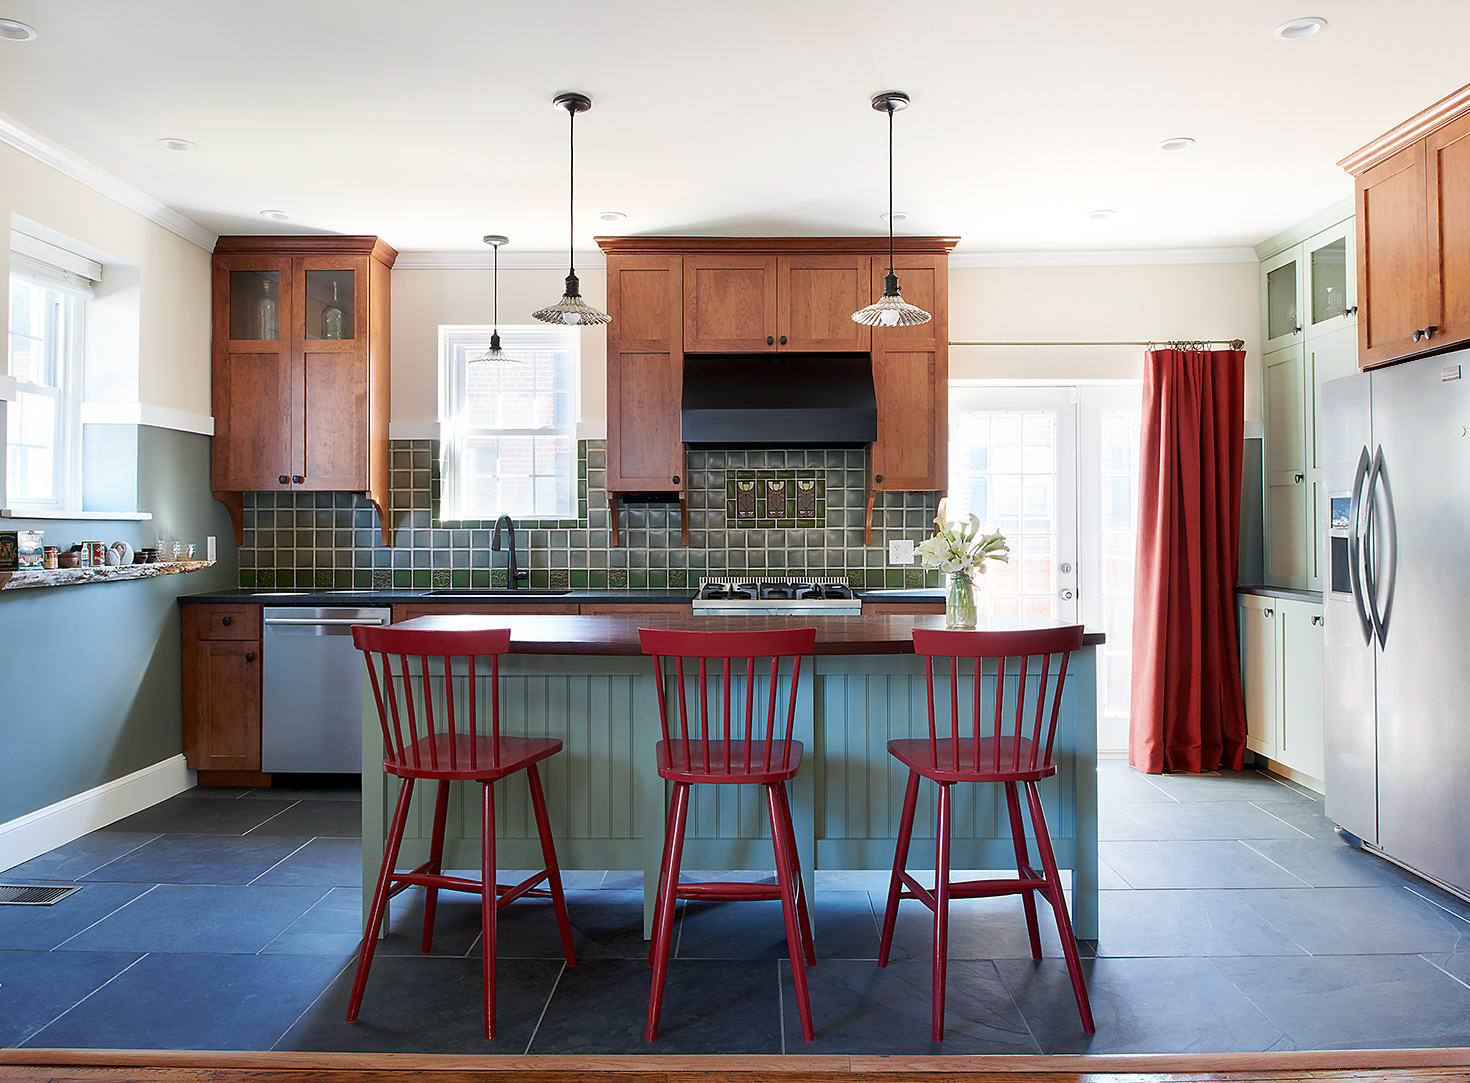 Decorative pendants provide task lighting over the sink and island.